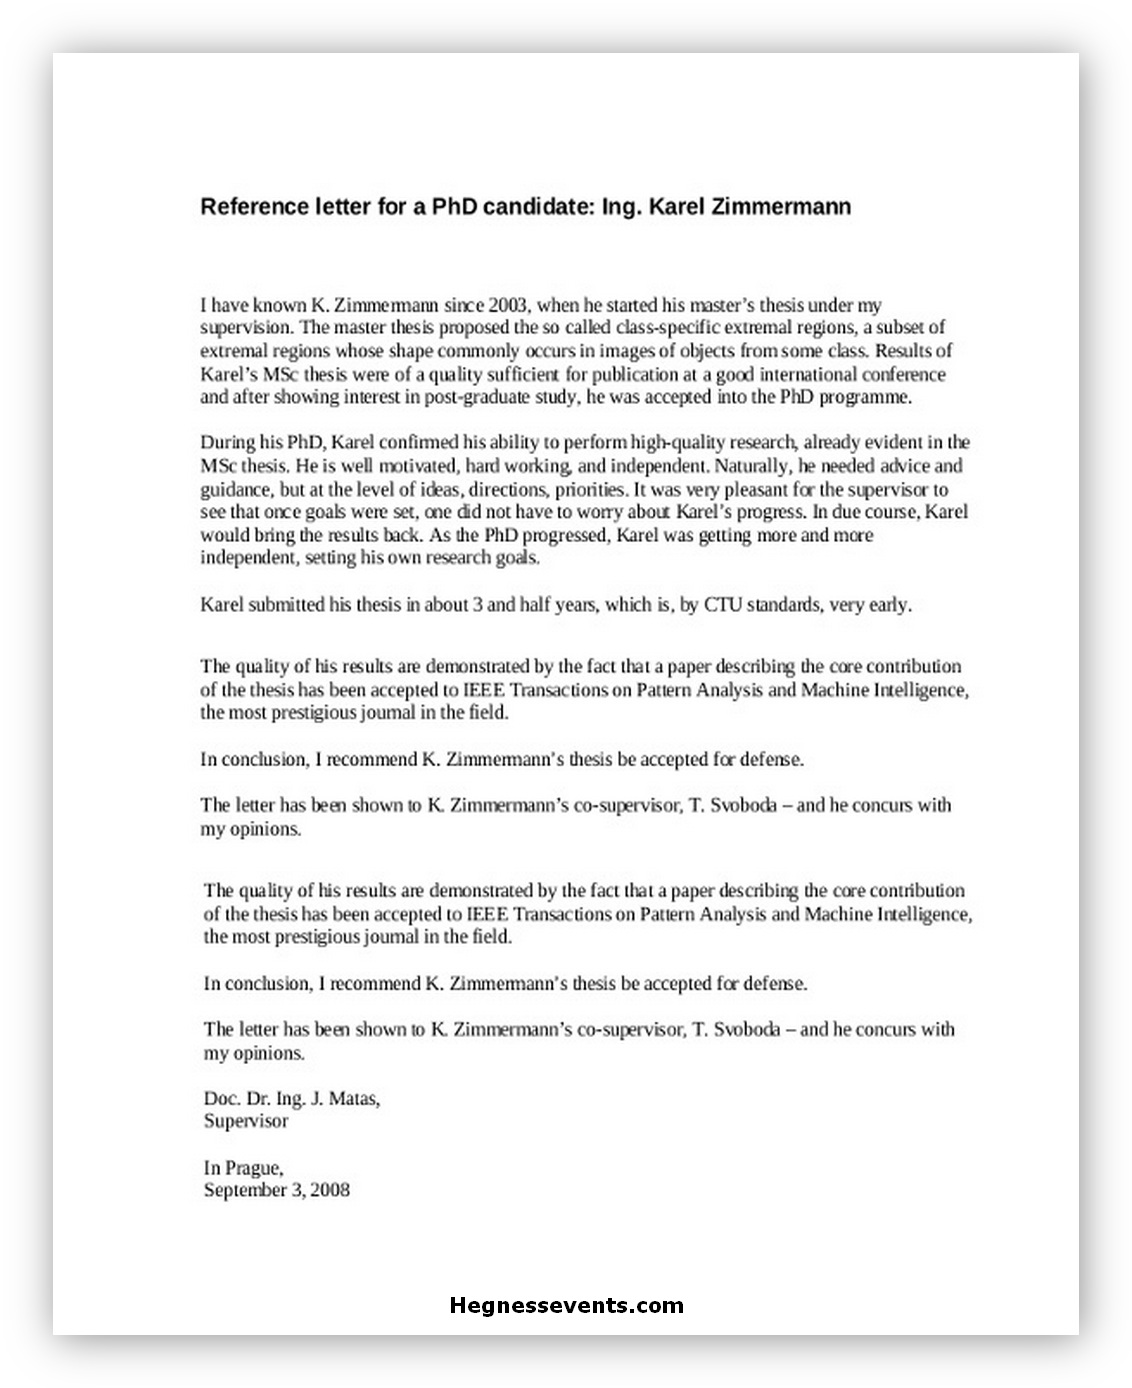 Sample Reference Letter For PhD Student